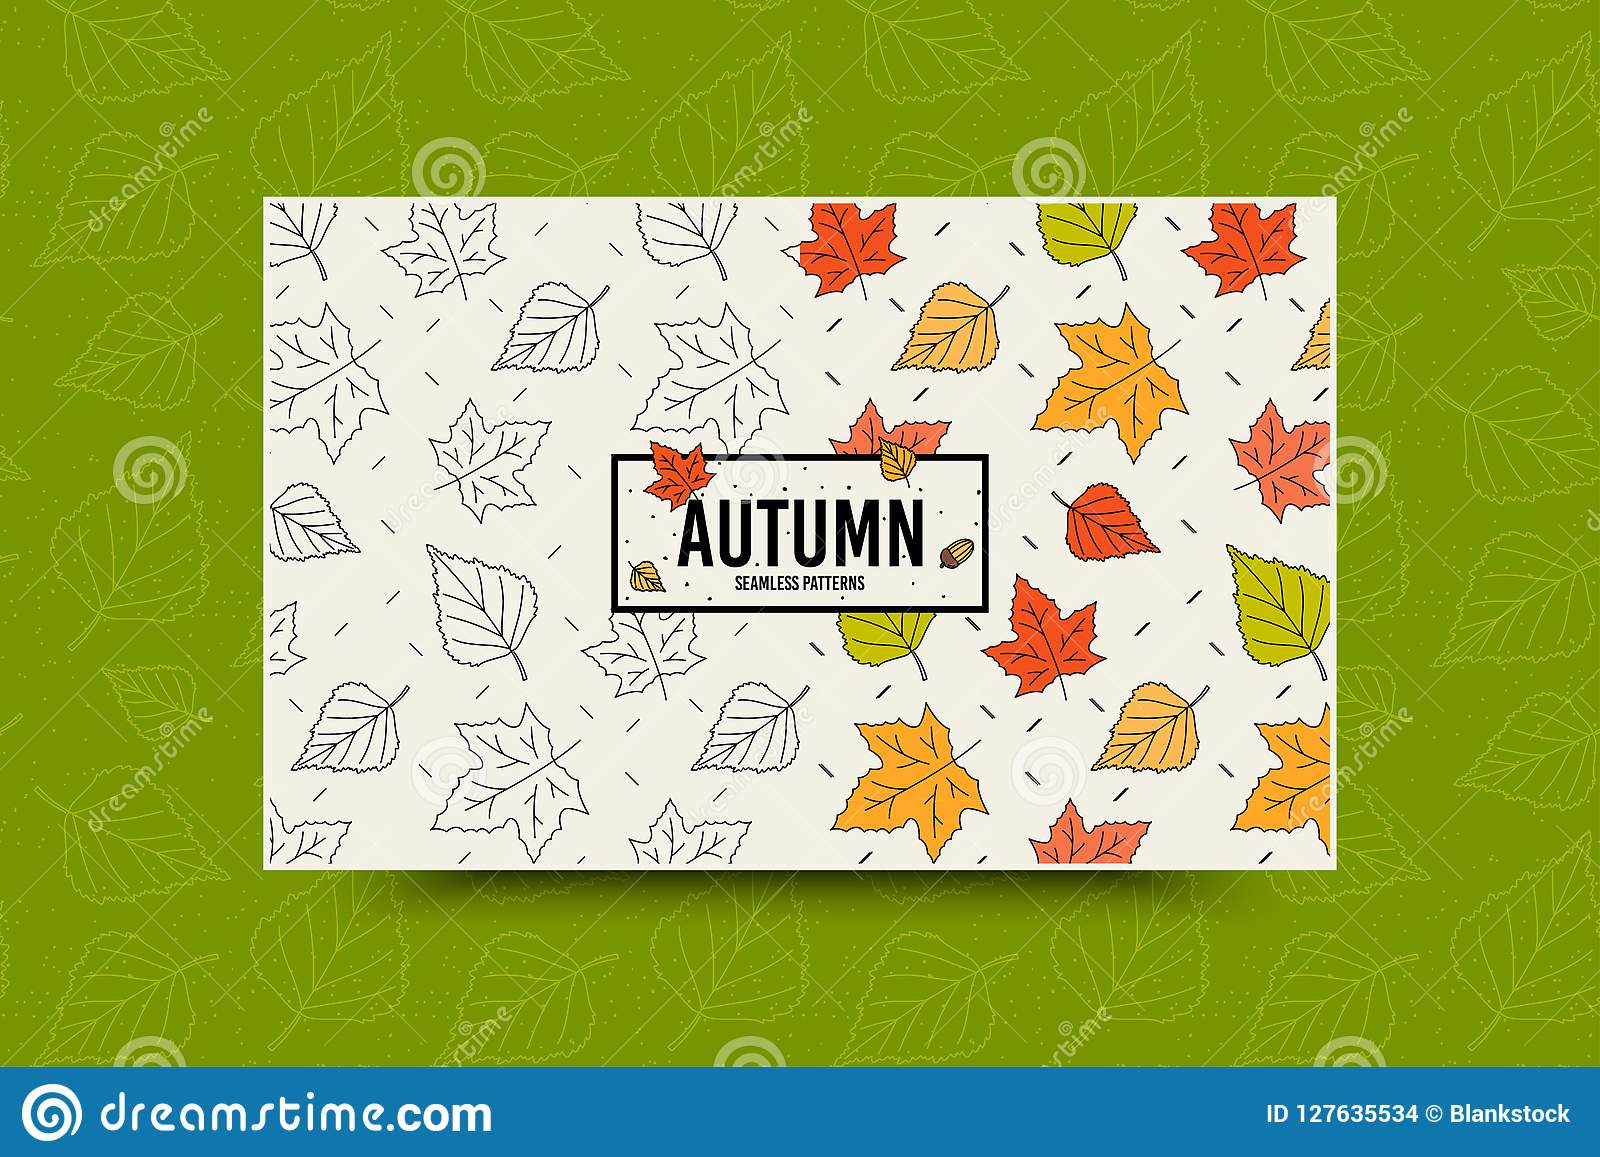 Autumn maple leaf pattern. Fall leaves seamless pattern. Seasonal web banner template with leaf texture. Vector